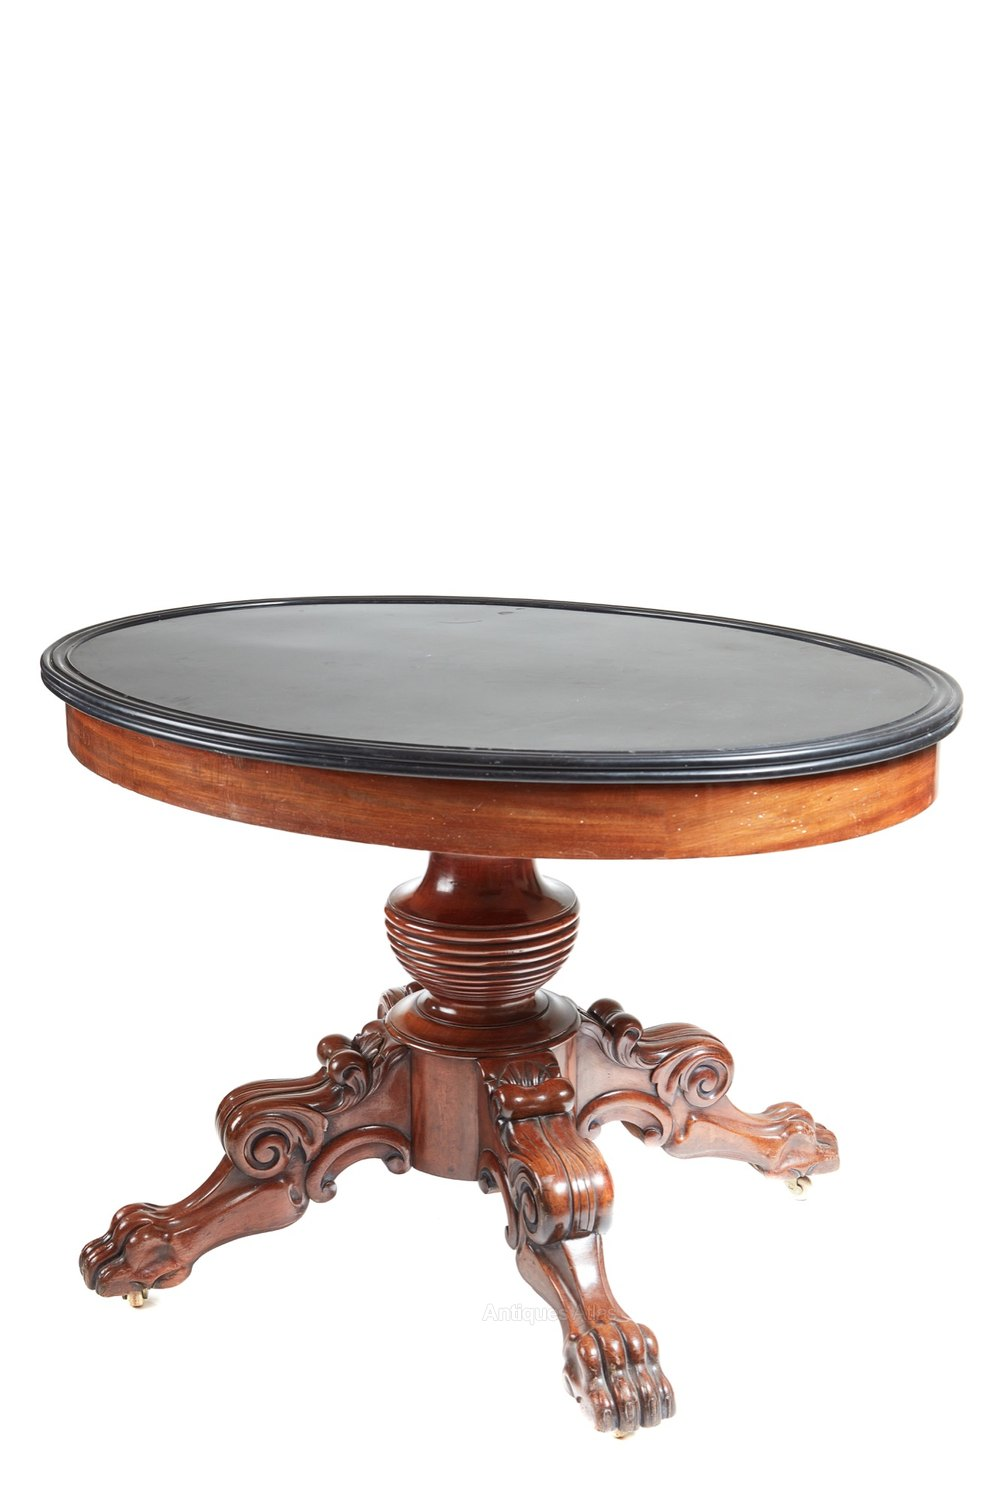 Amazing Oval marble top gueridon centre table